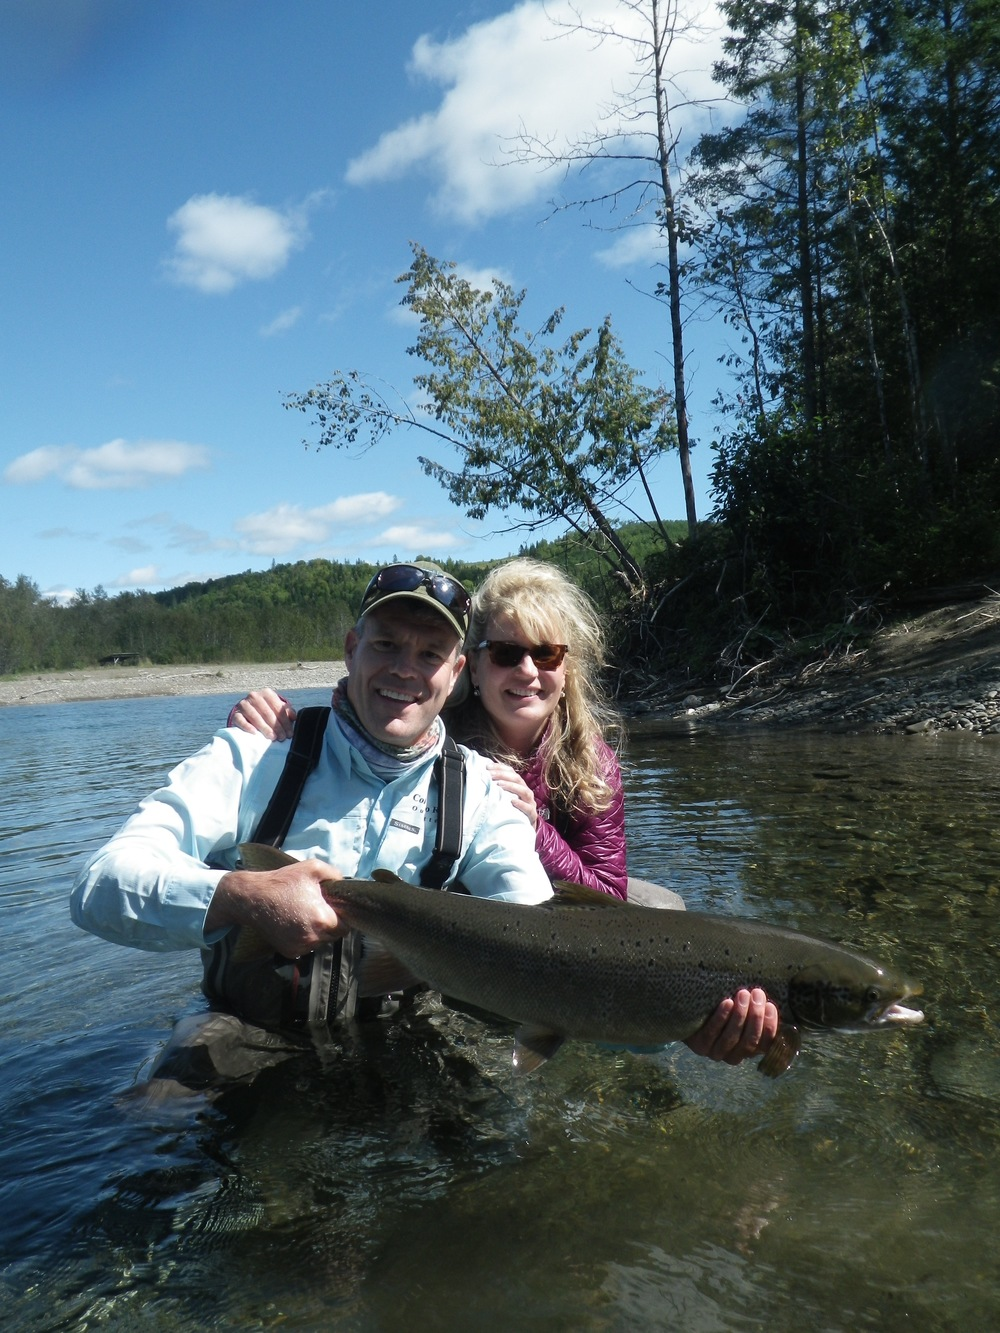 Brian and Pamela came all the way from Texas to catch this fine Atlantic salmon, Congratulations !